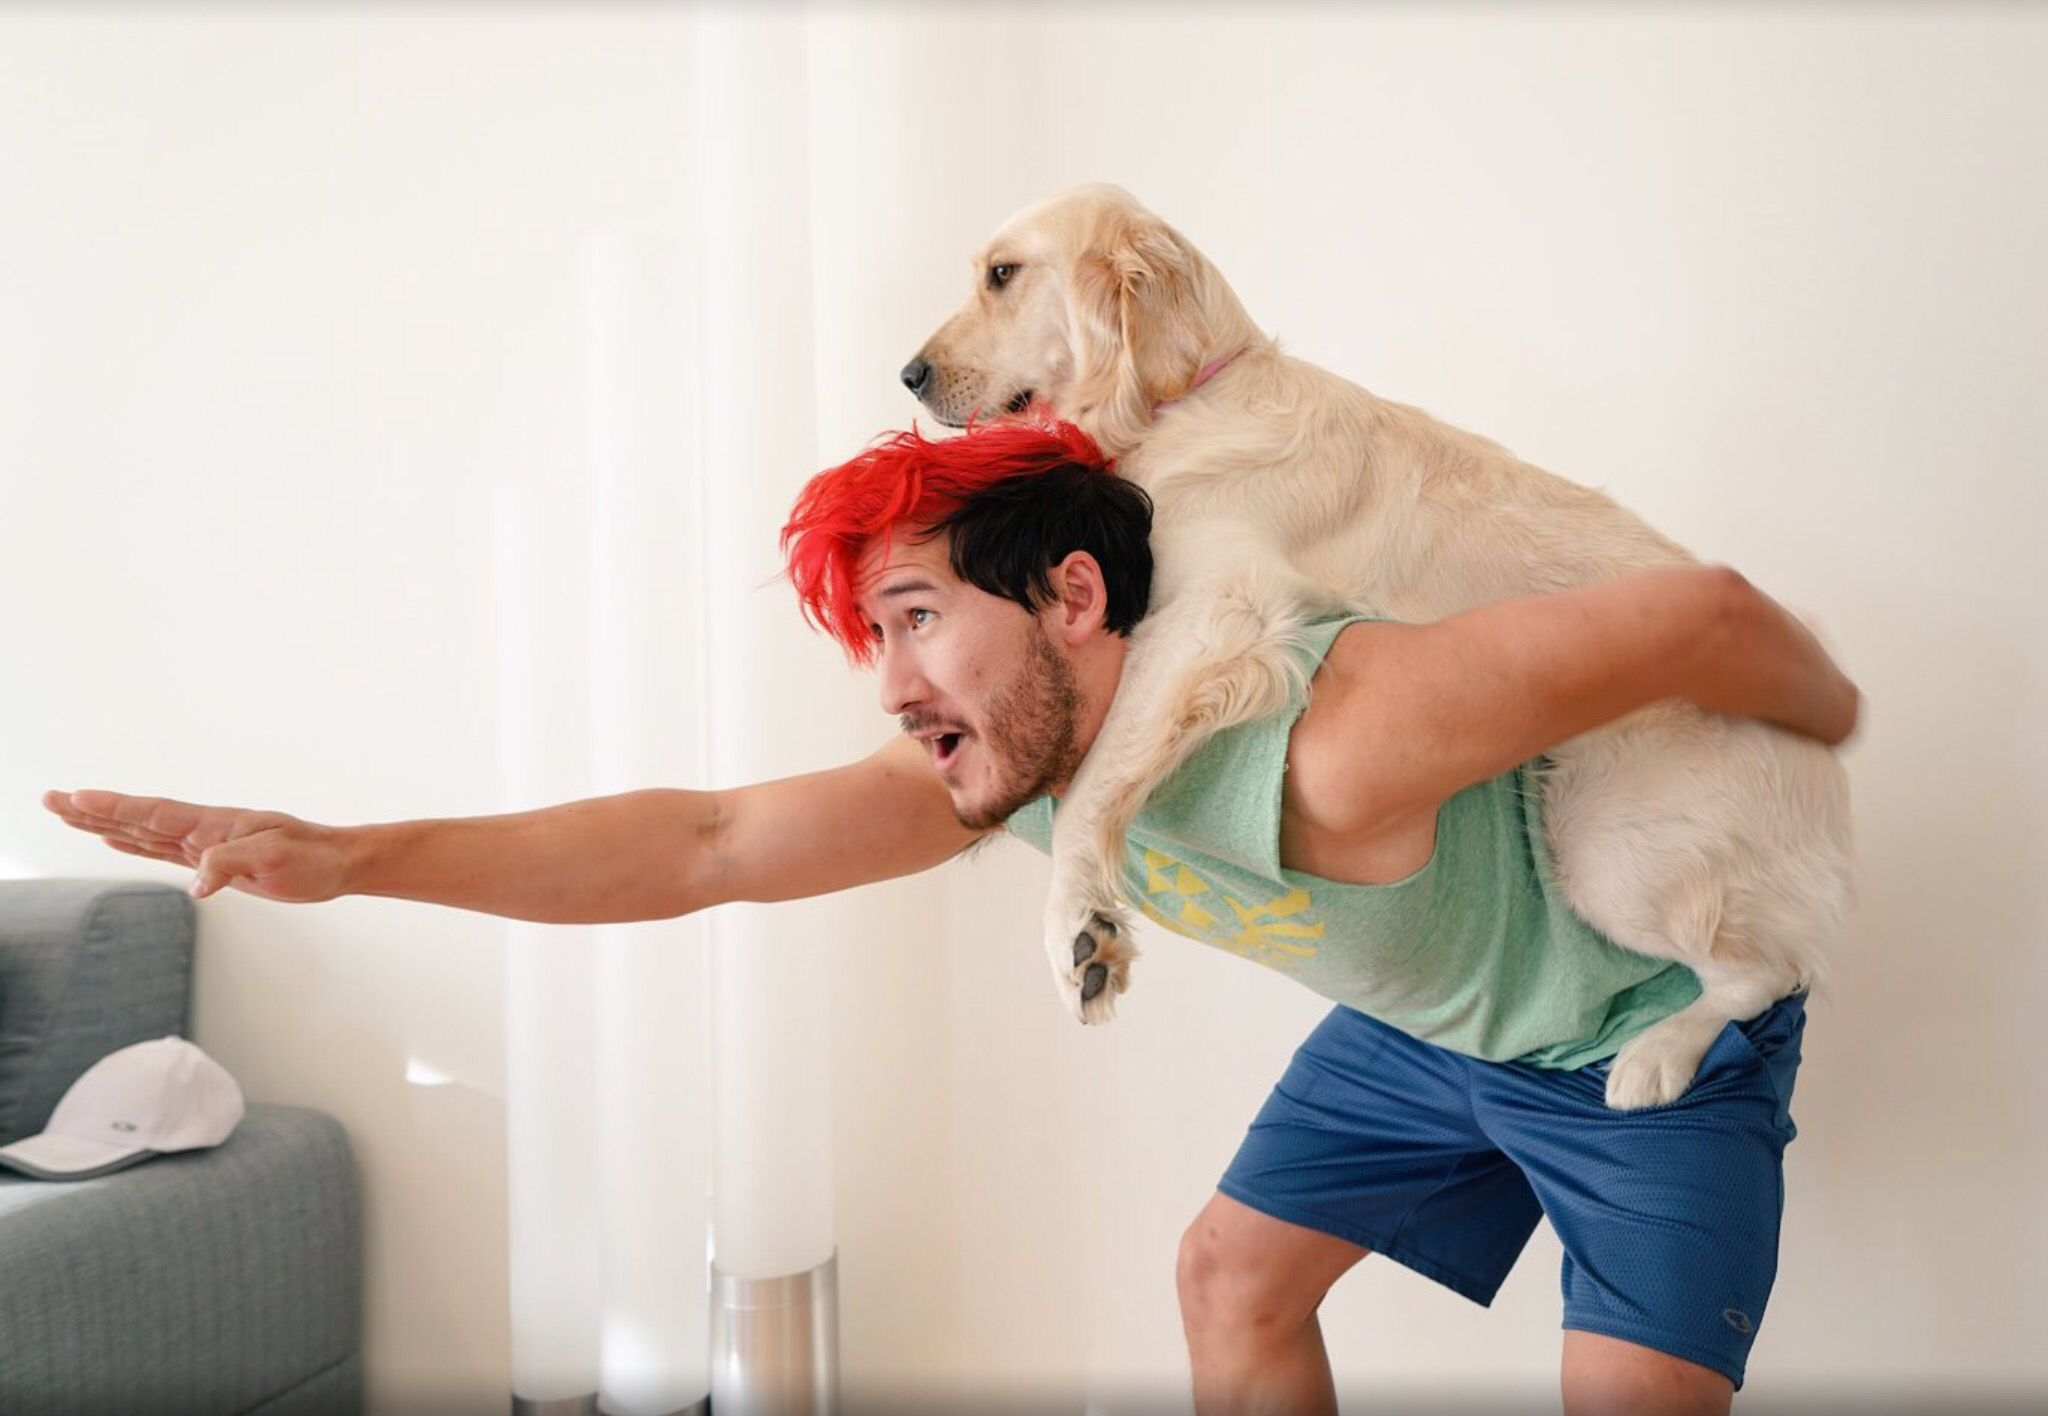 This is probably how Mark actually gets his exercise